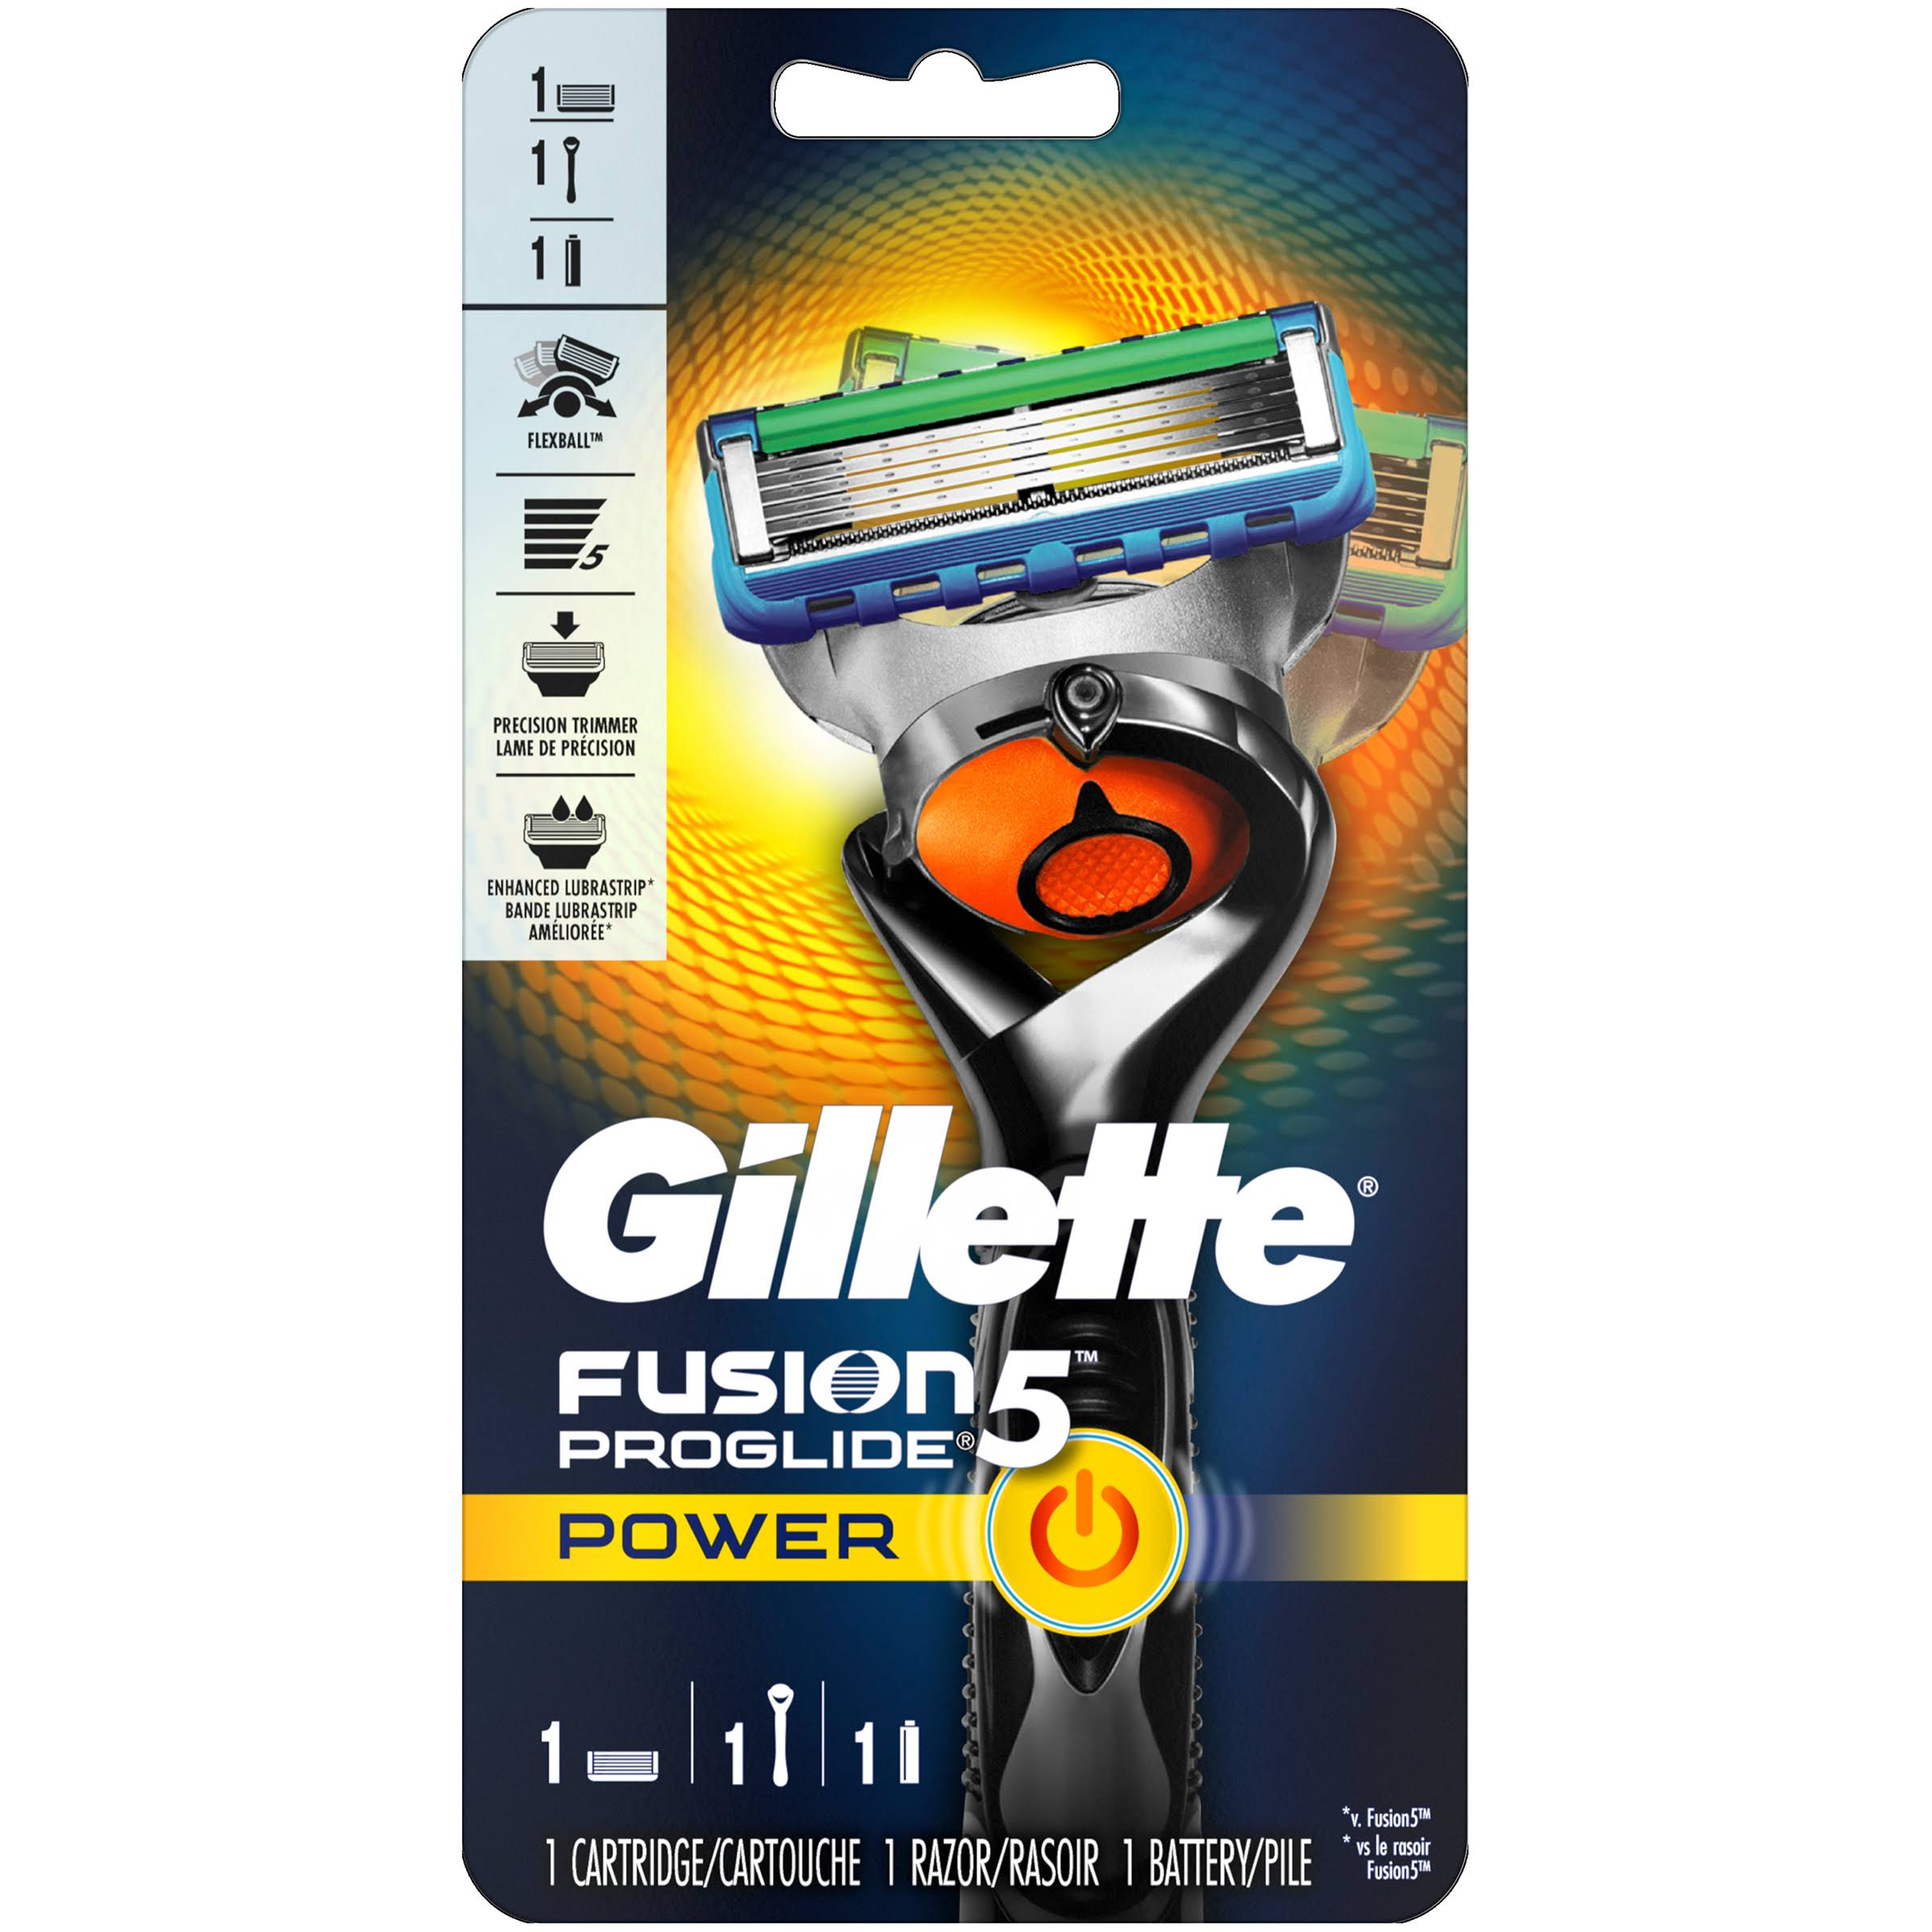 Gillette Fusion5 ProGlide Power Razor - with 1 Cartridge and 1 Battery